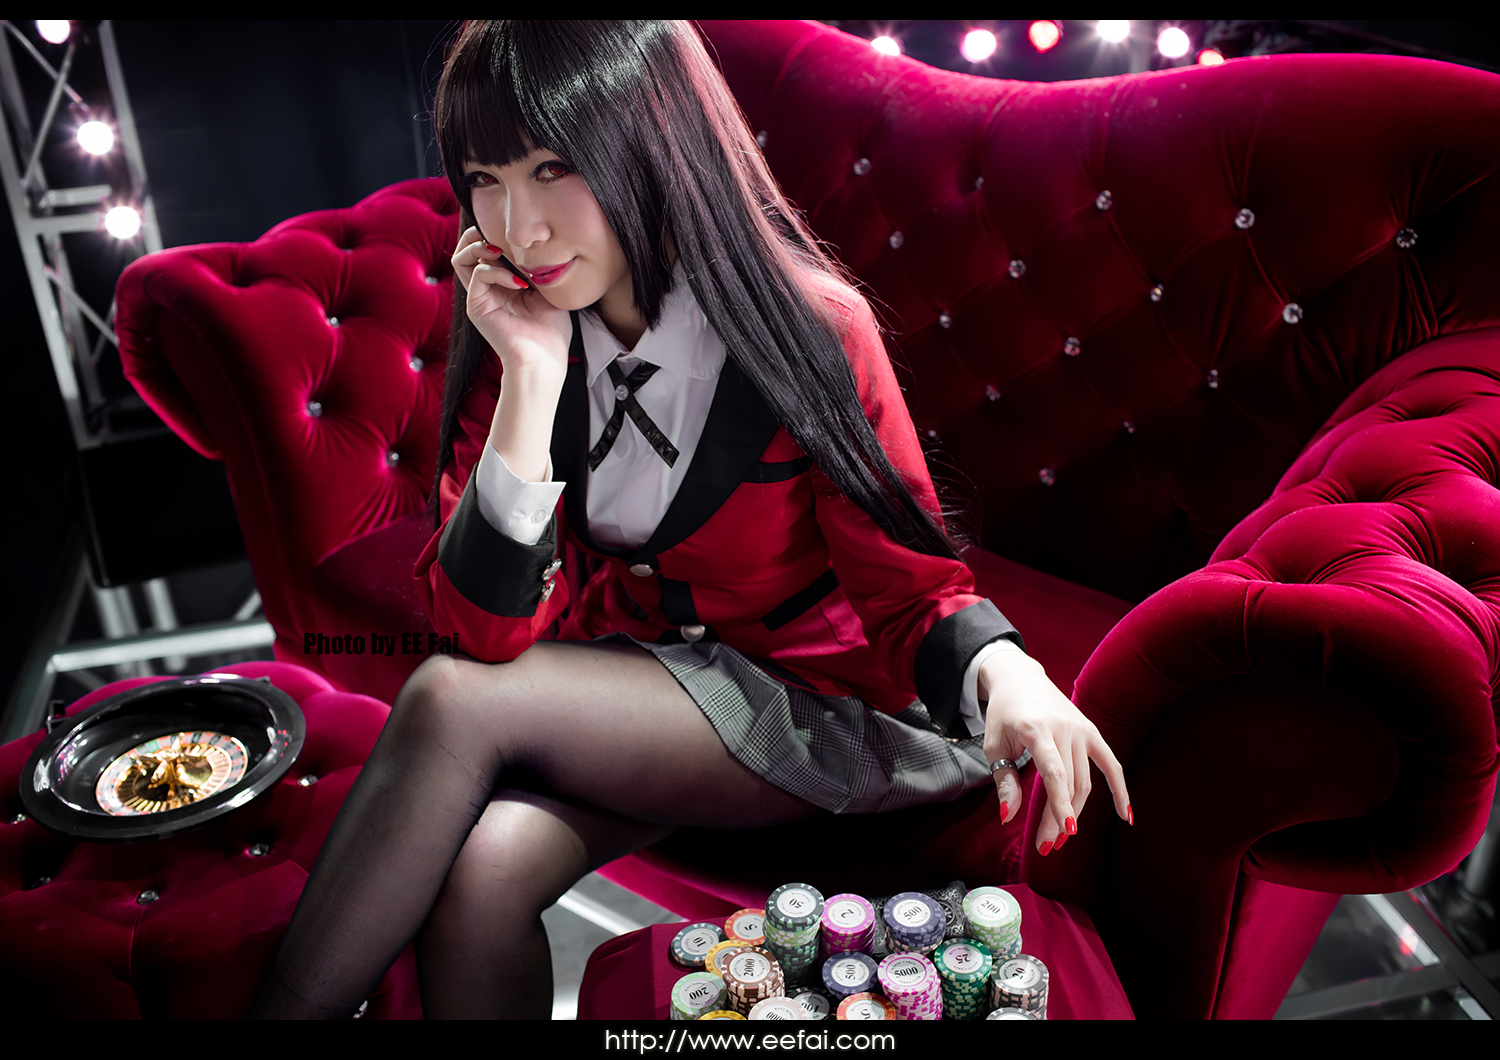 Kakegurui Yumeko Jabami Cosplay 13 by eefai on DeviantArt